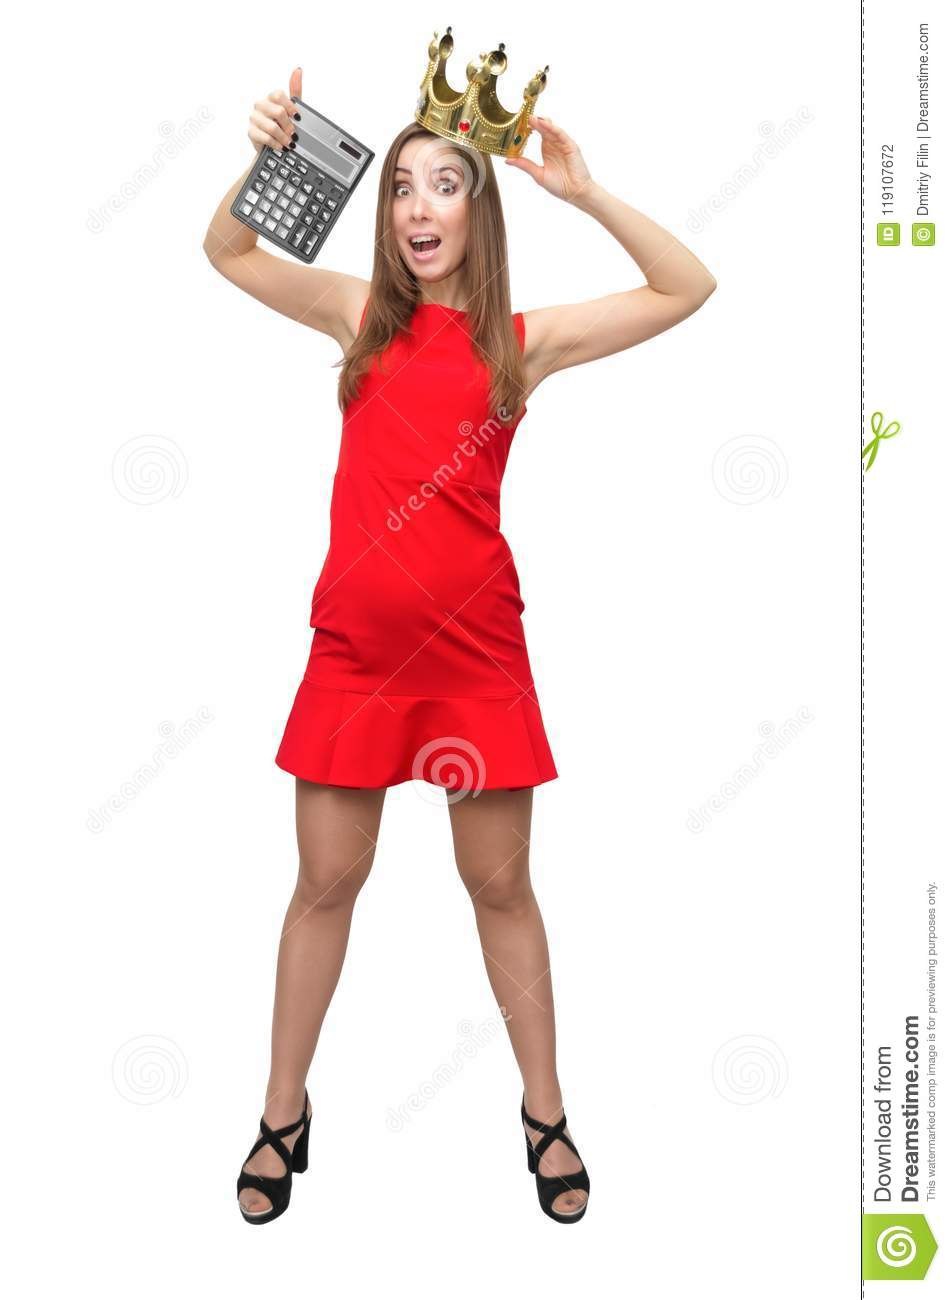 woman in red dress with calculator stock photo image of holding